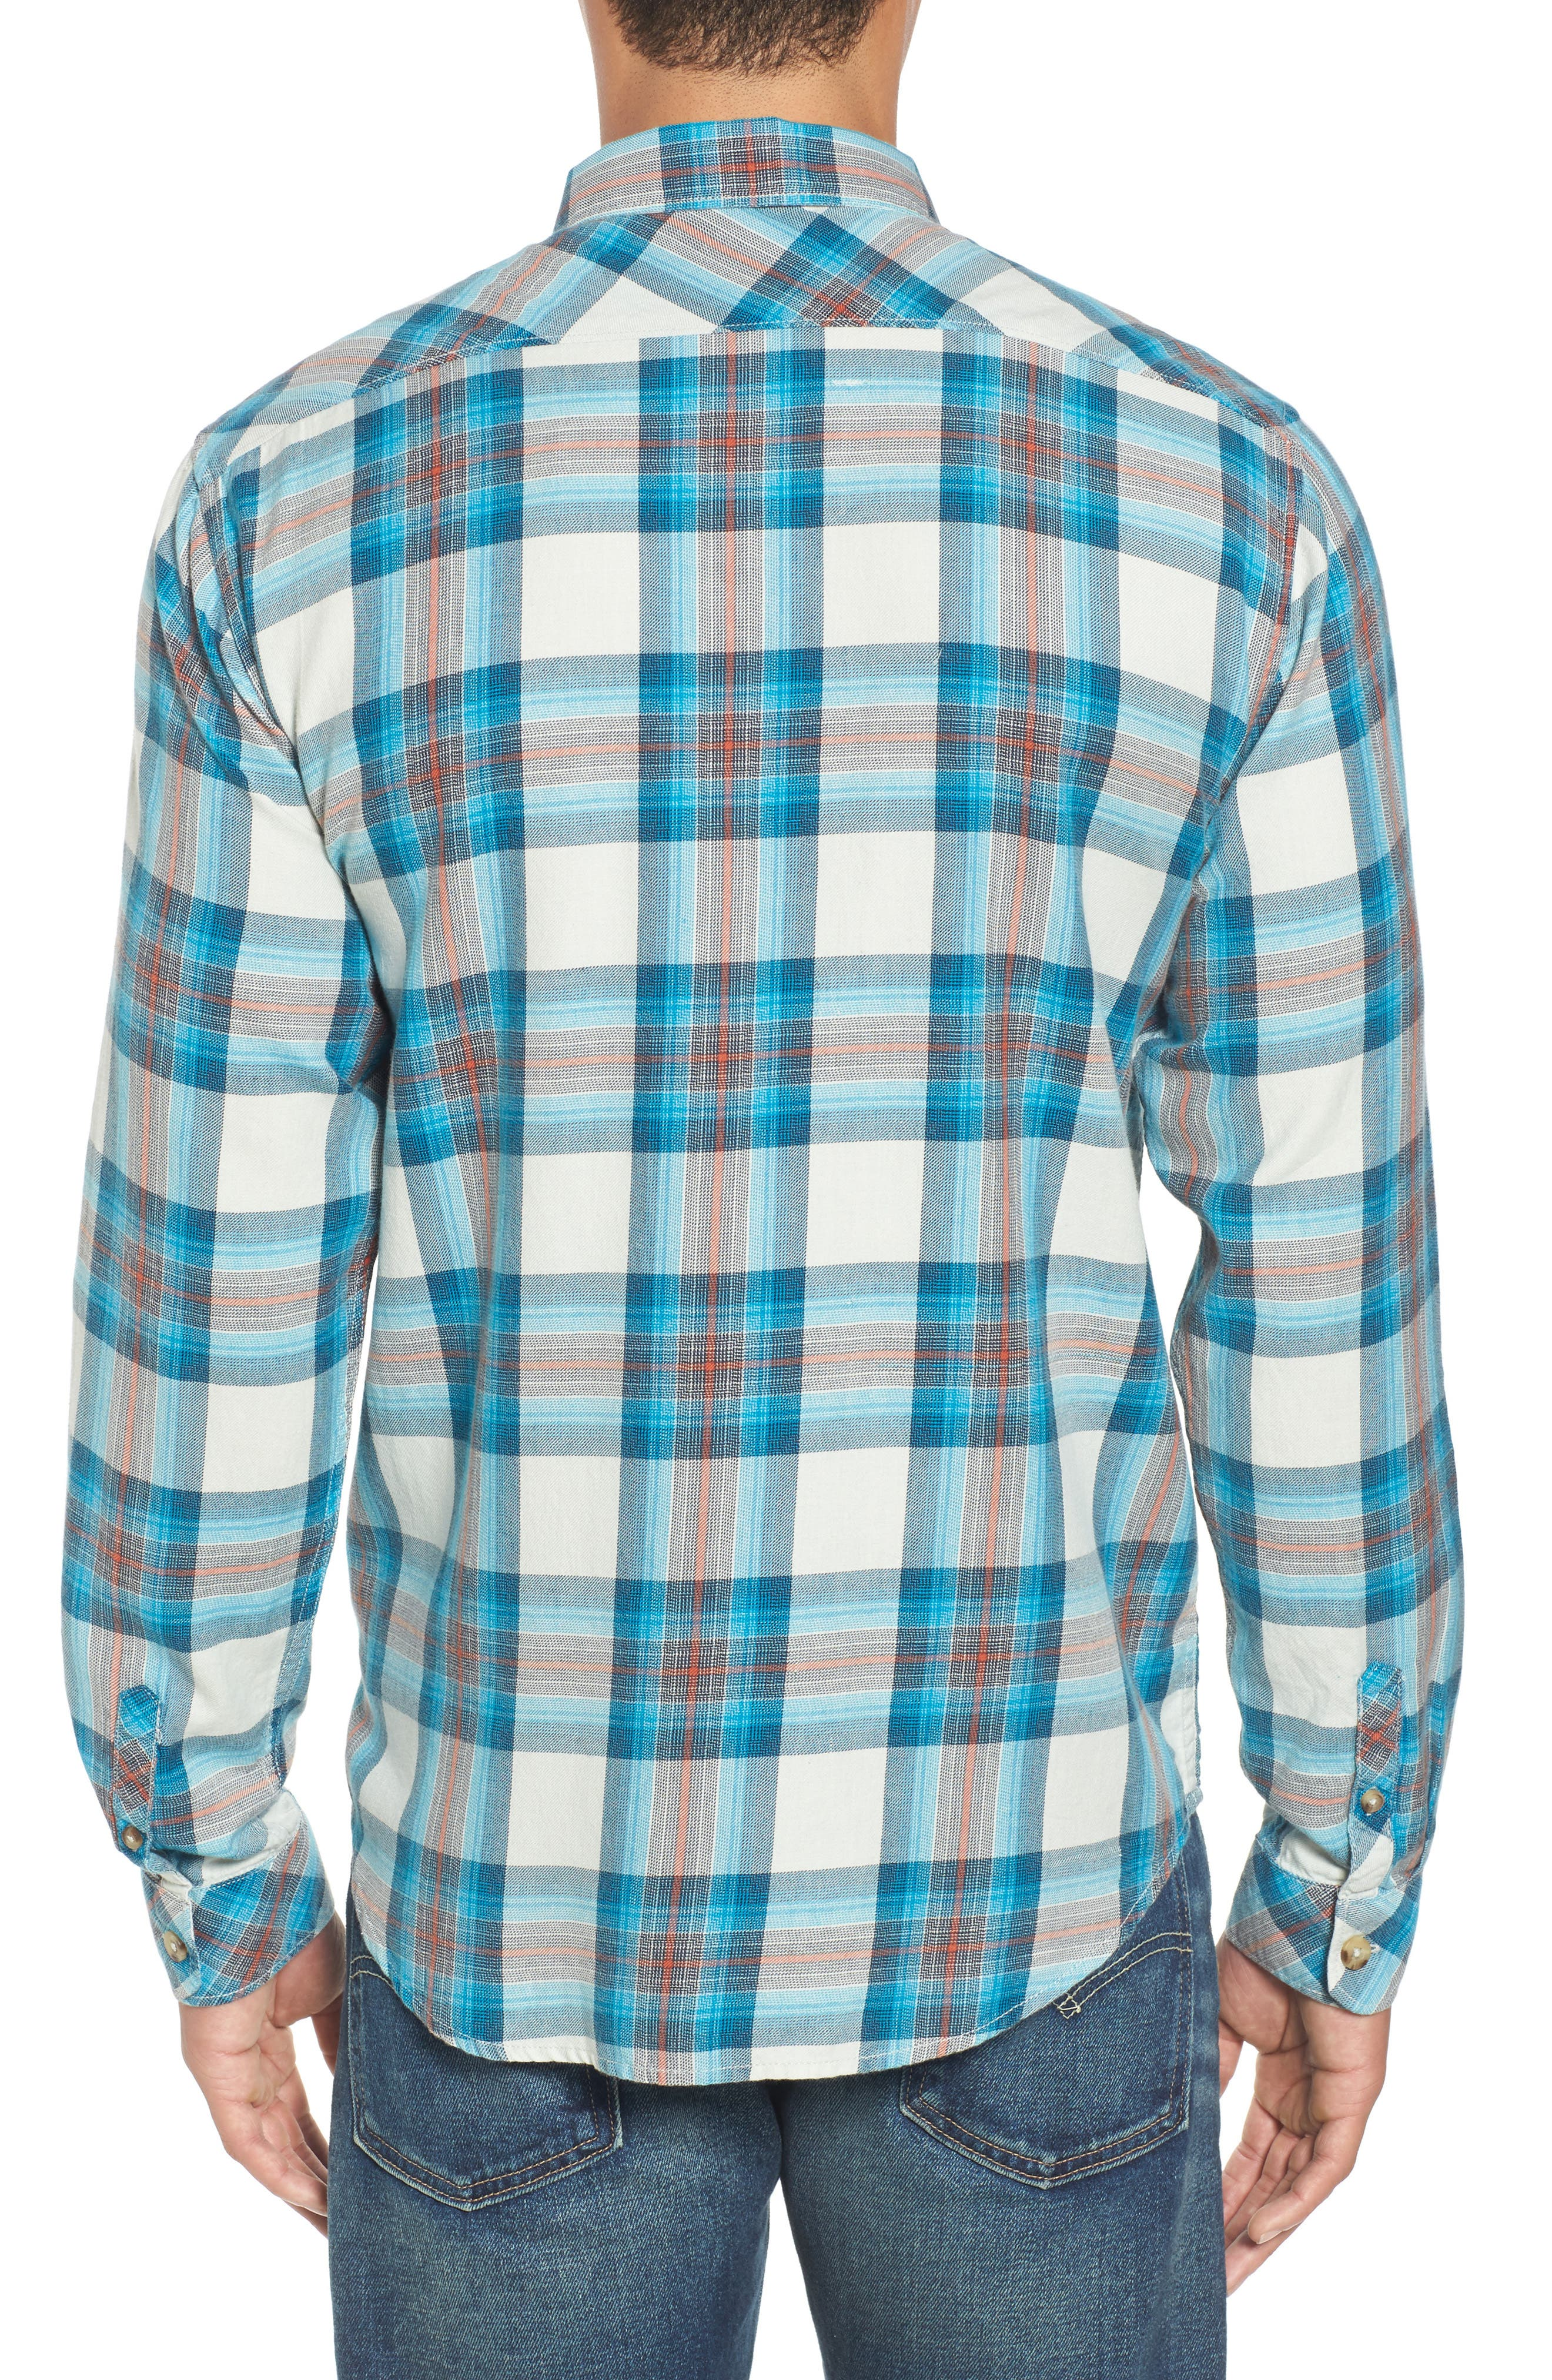 Freemont Flannel Shirt,                             Alternate thumbnail 2, color,                             020